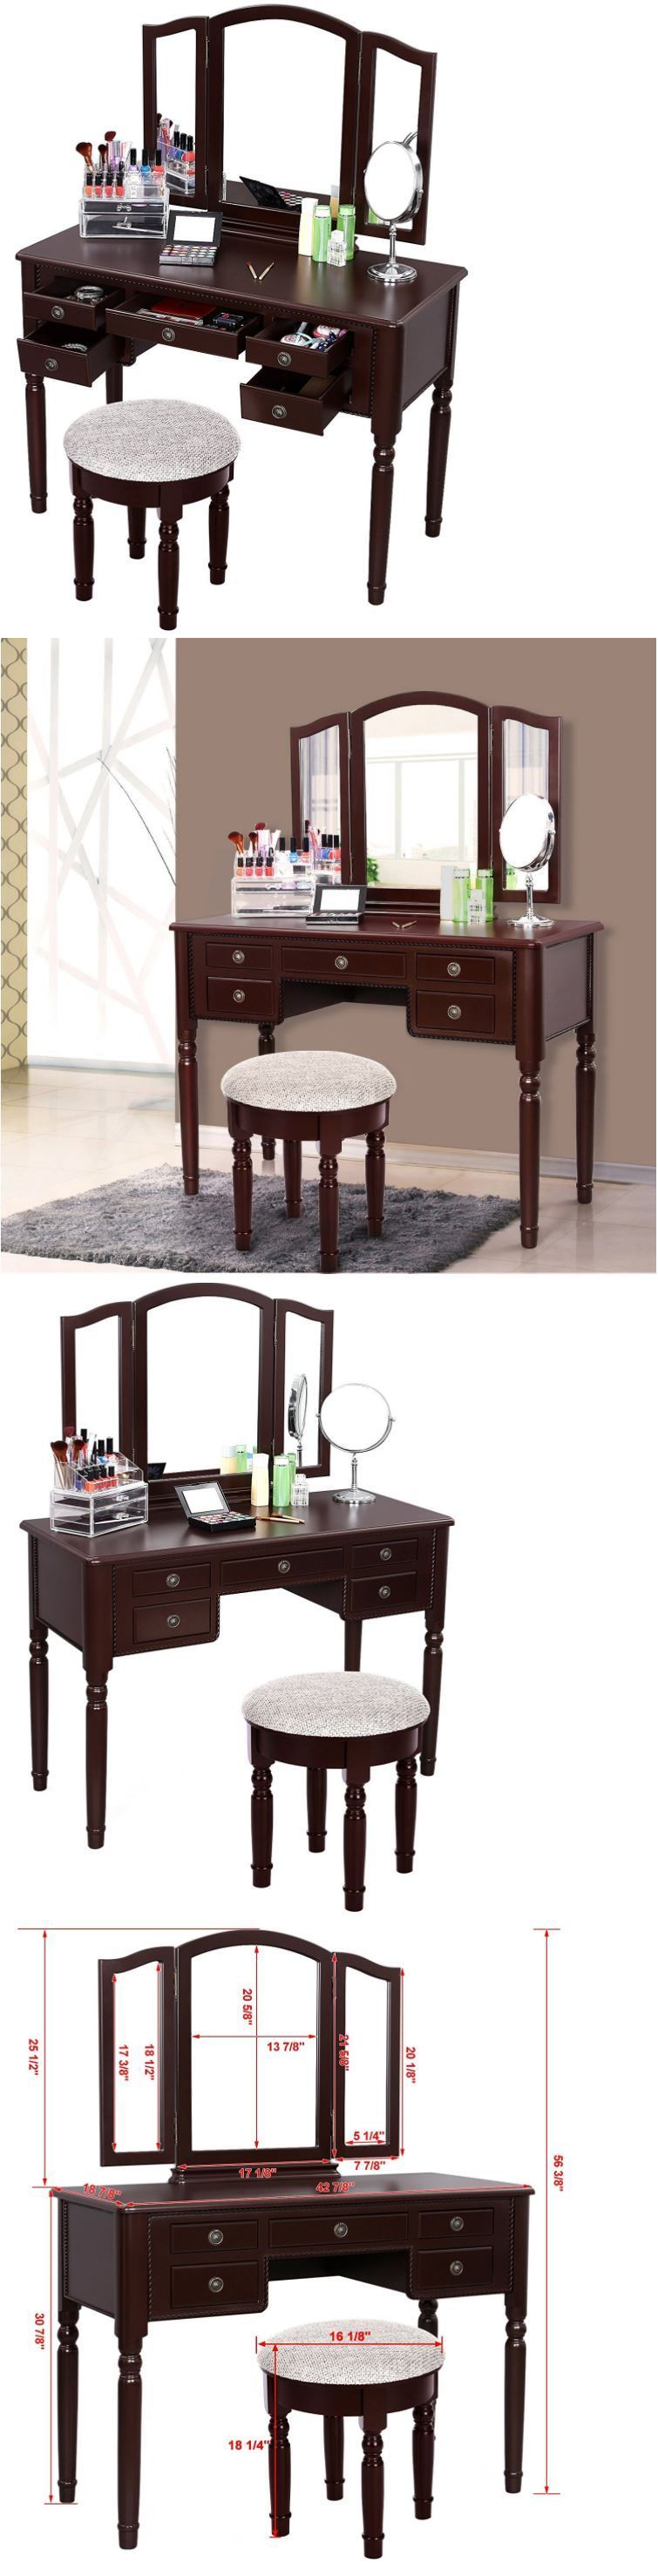 Vanities And Makeup Tables 32878: Vanity Set With Mirror For Girls